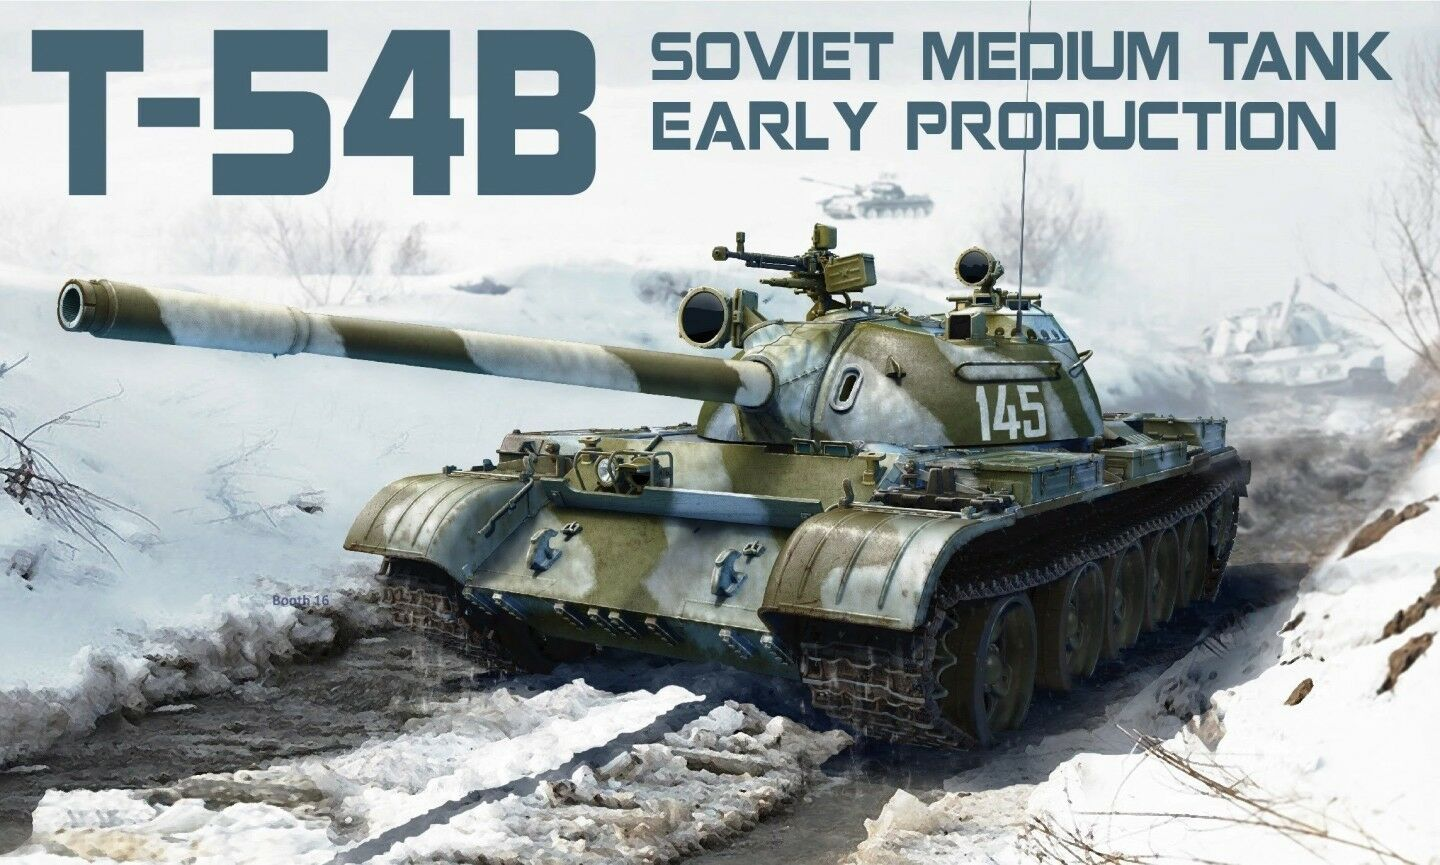 1 35 MINIART Soviet Medium Tank T-54B Early production